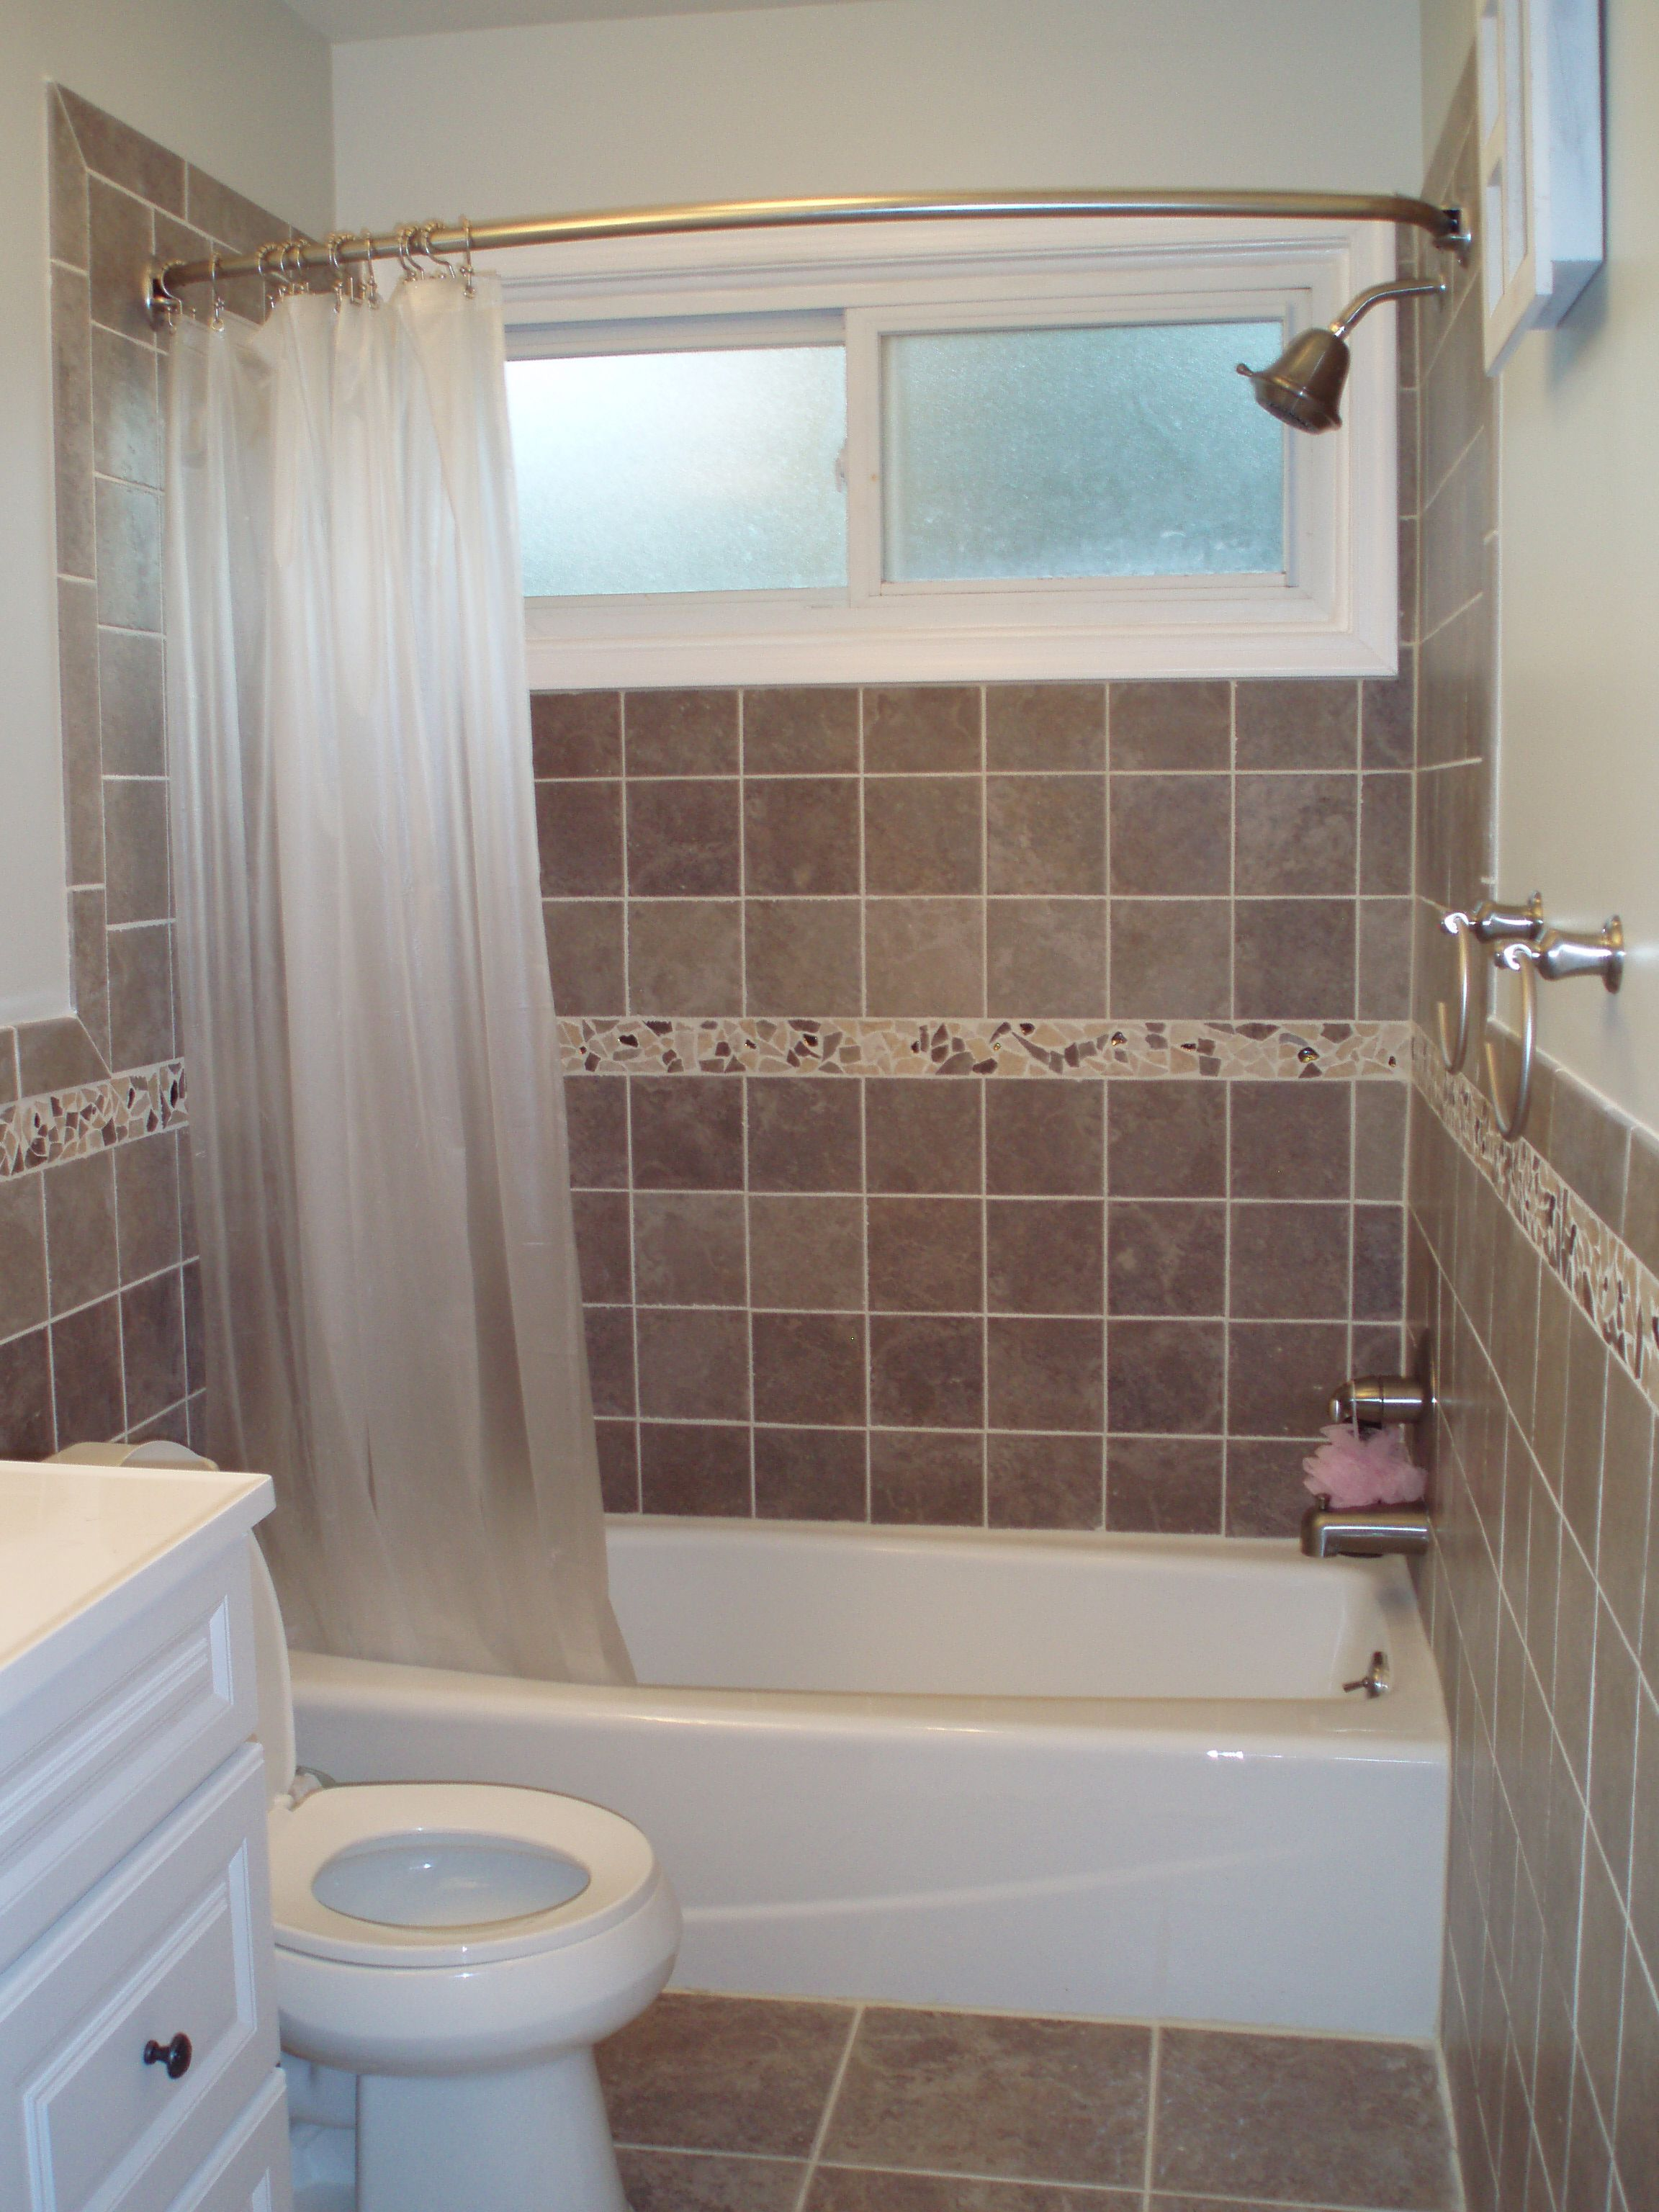 Small Bathroom Ideas With Tub Bohlerint – Bathtubs for Small Bathrooms